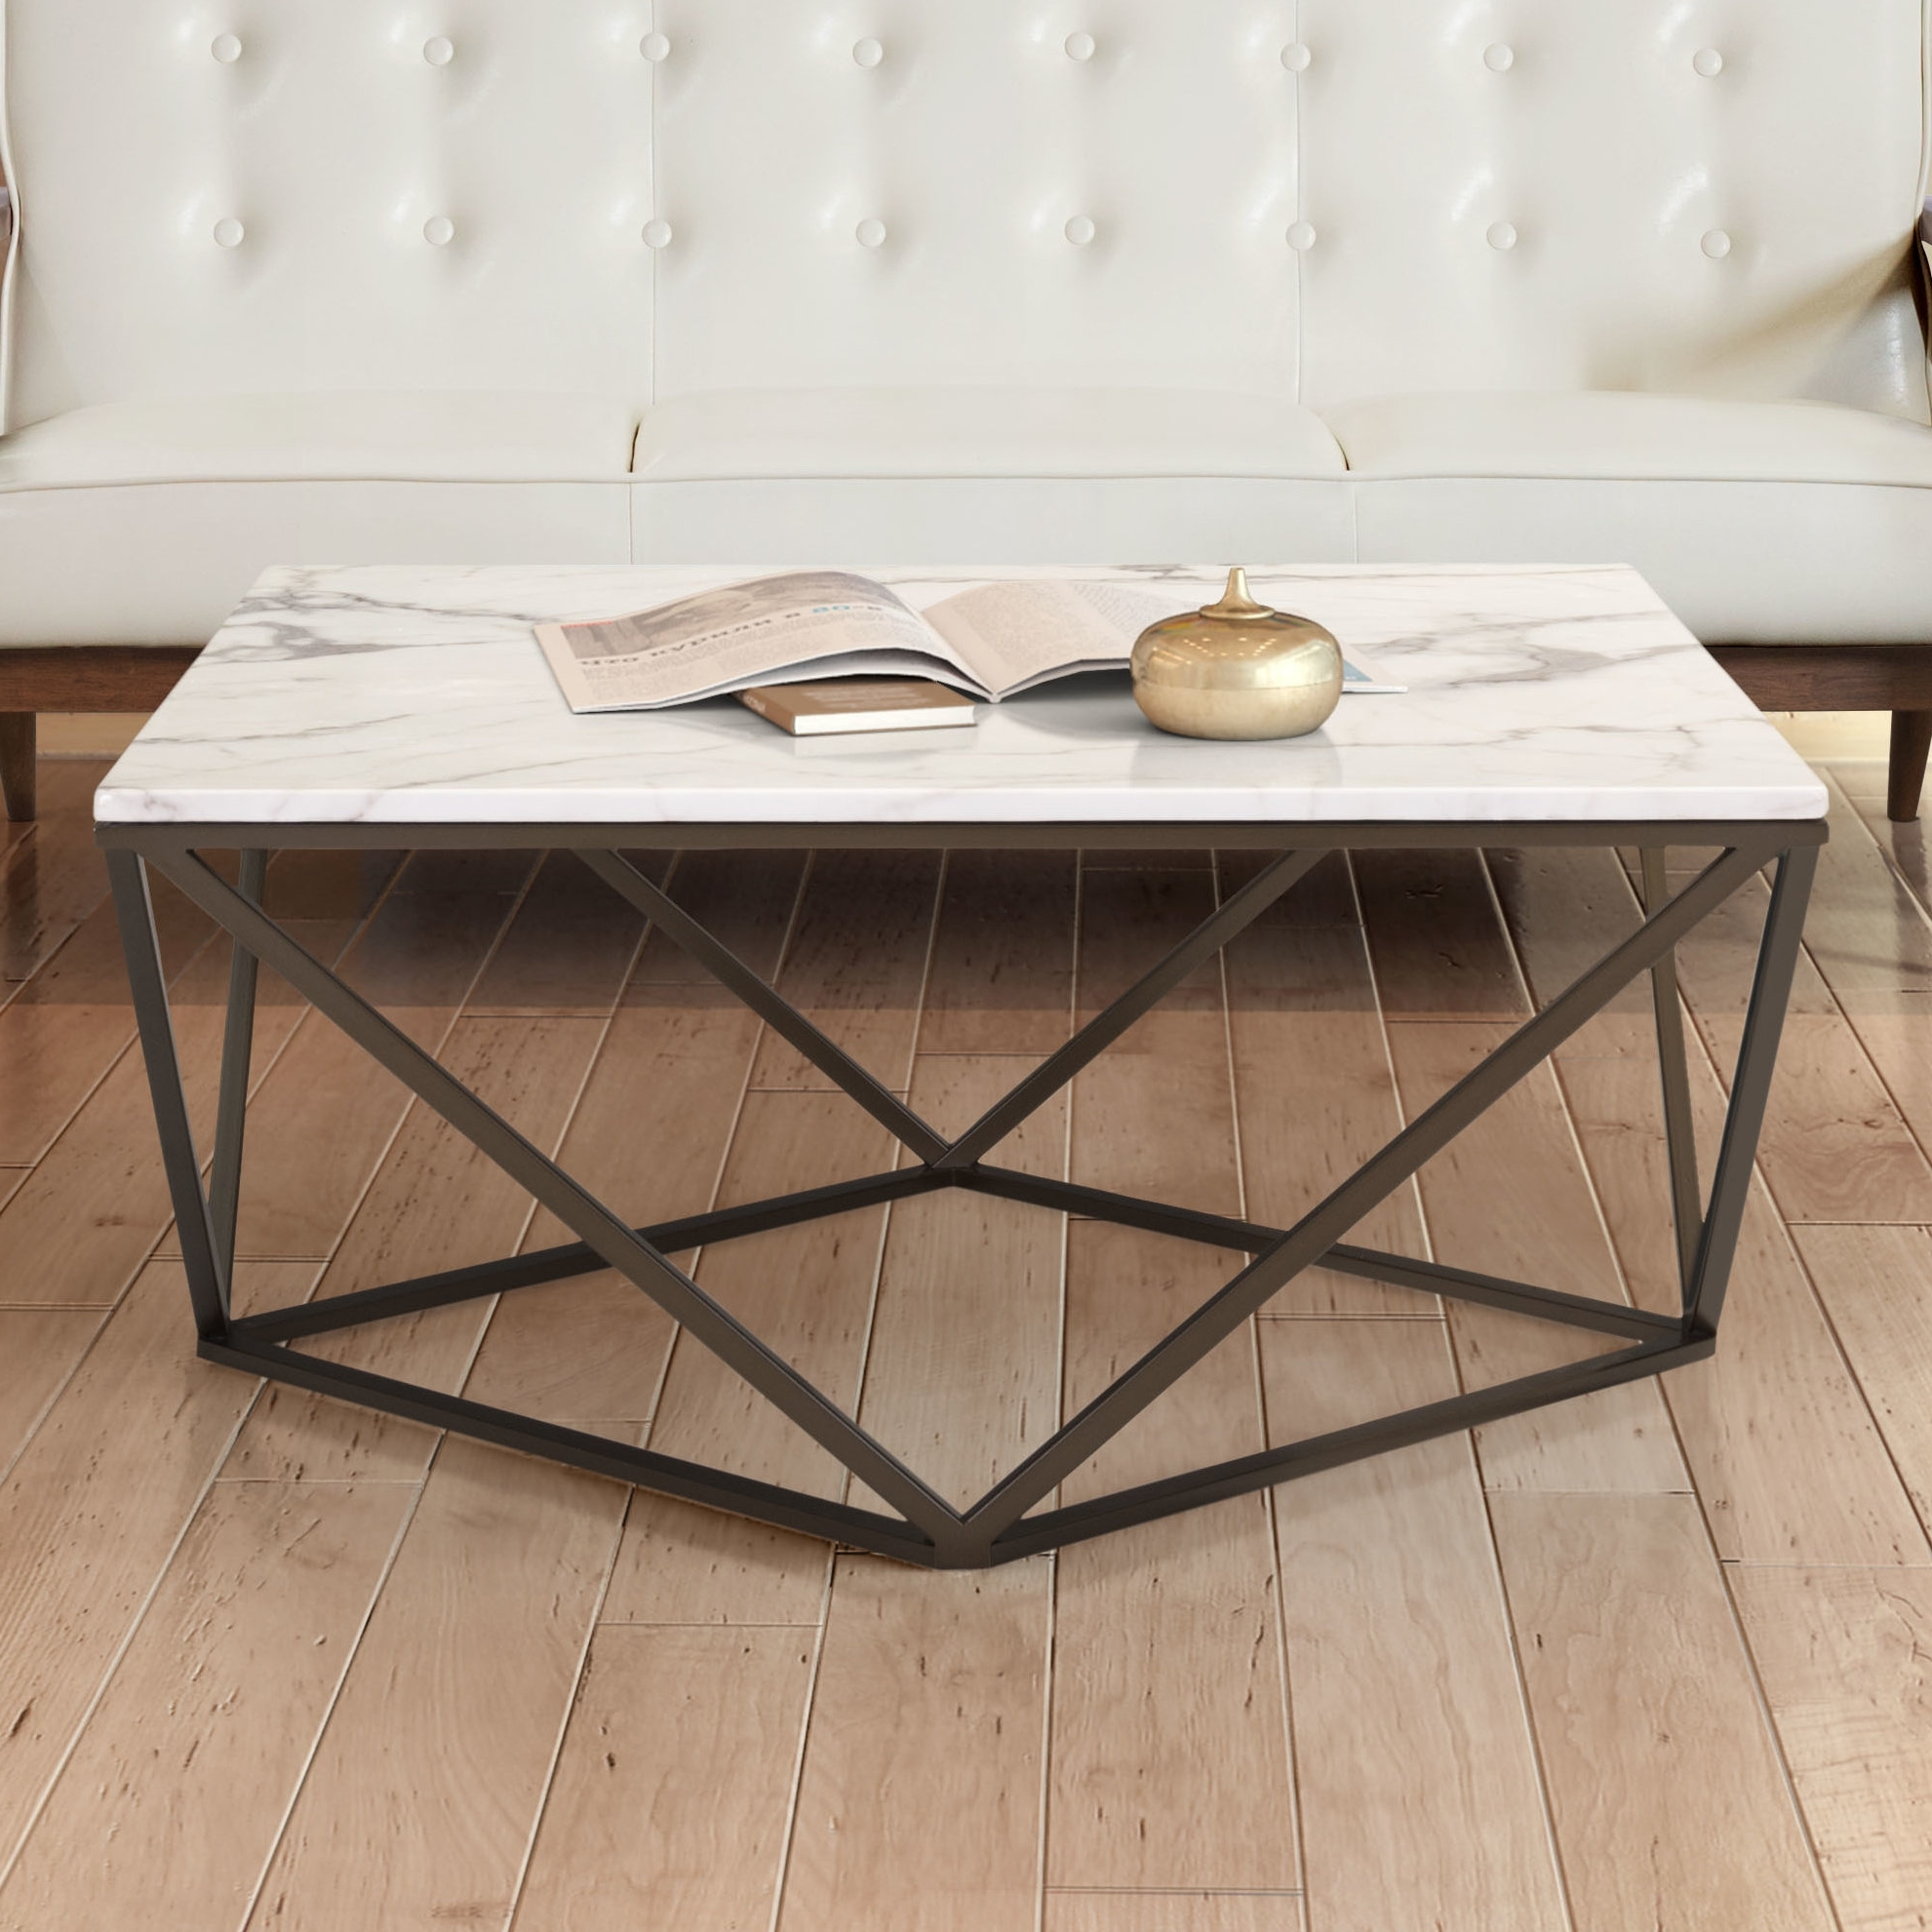 Wayfair Throughout Popular 2 Tone Grey And White Marble Coffee Tables (View 9 of 20)